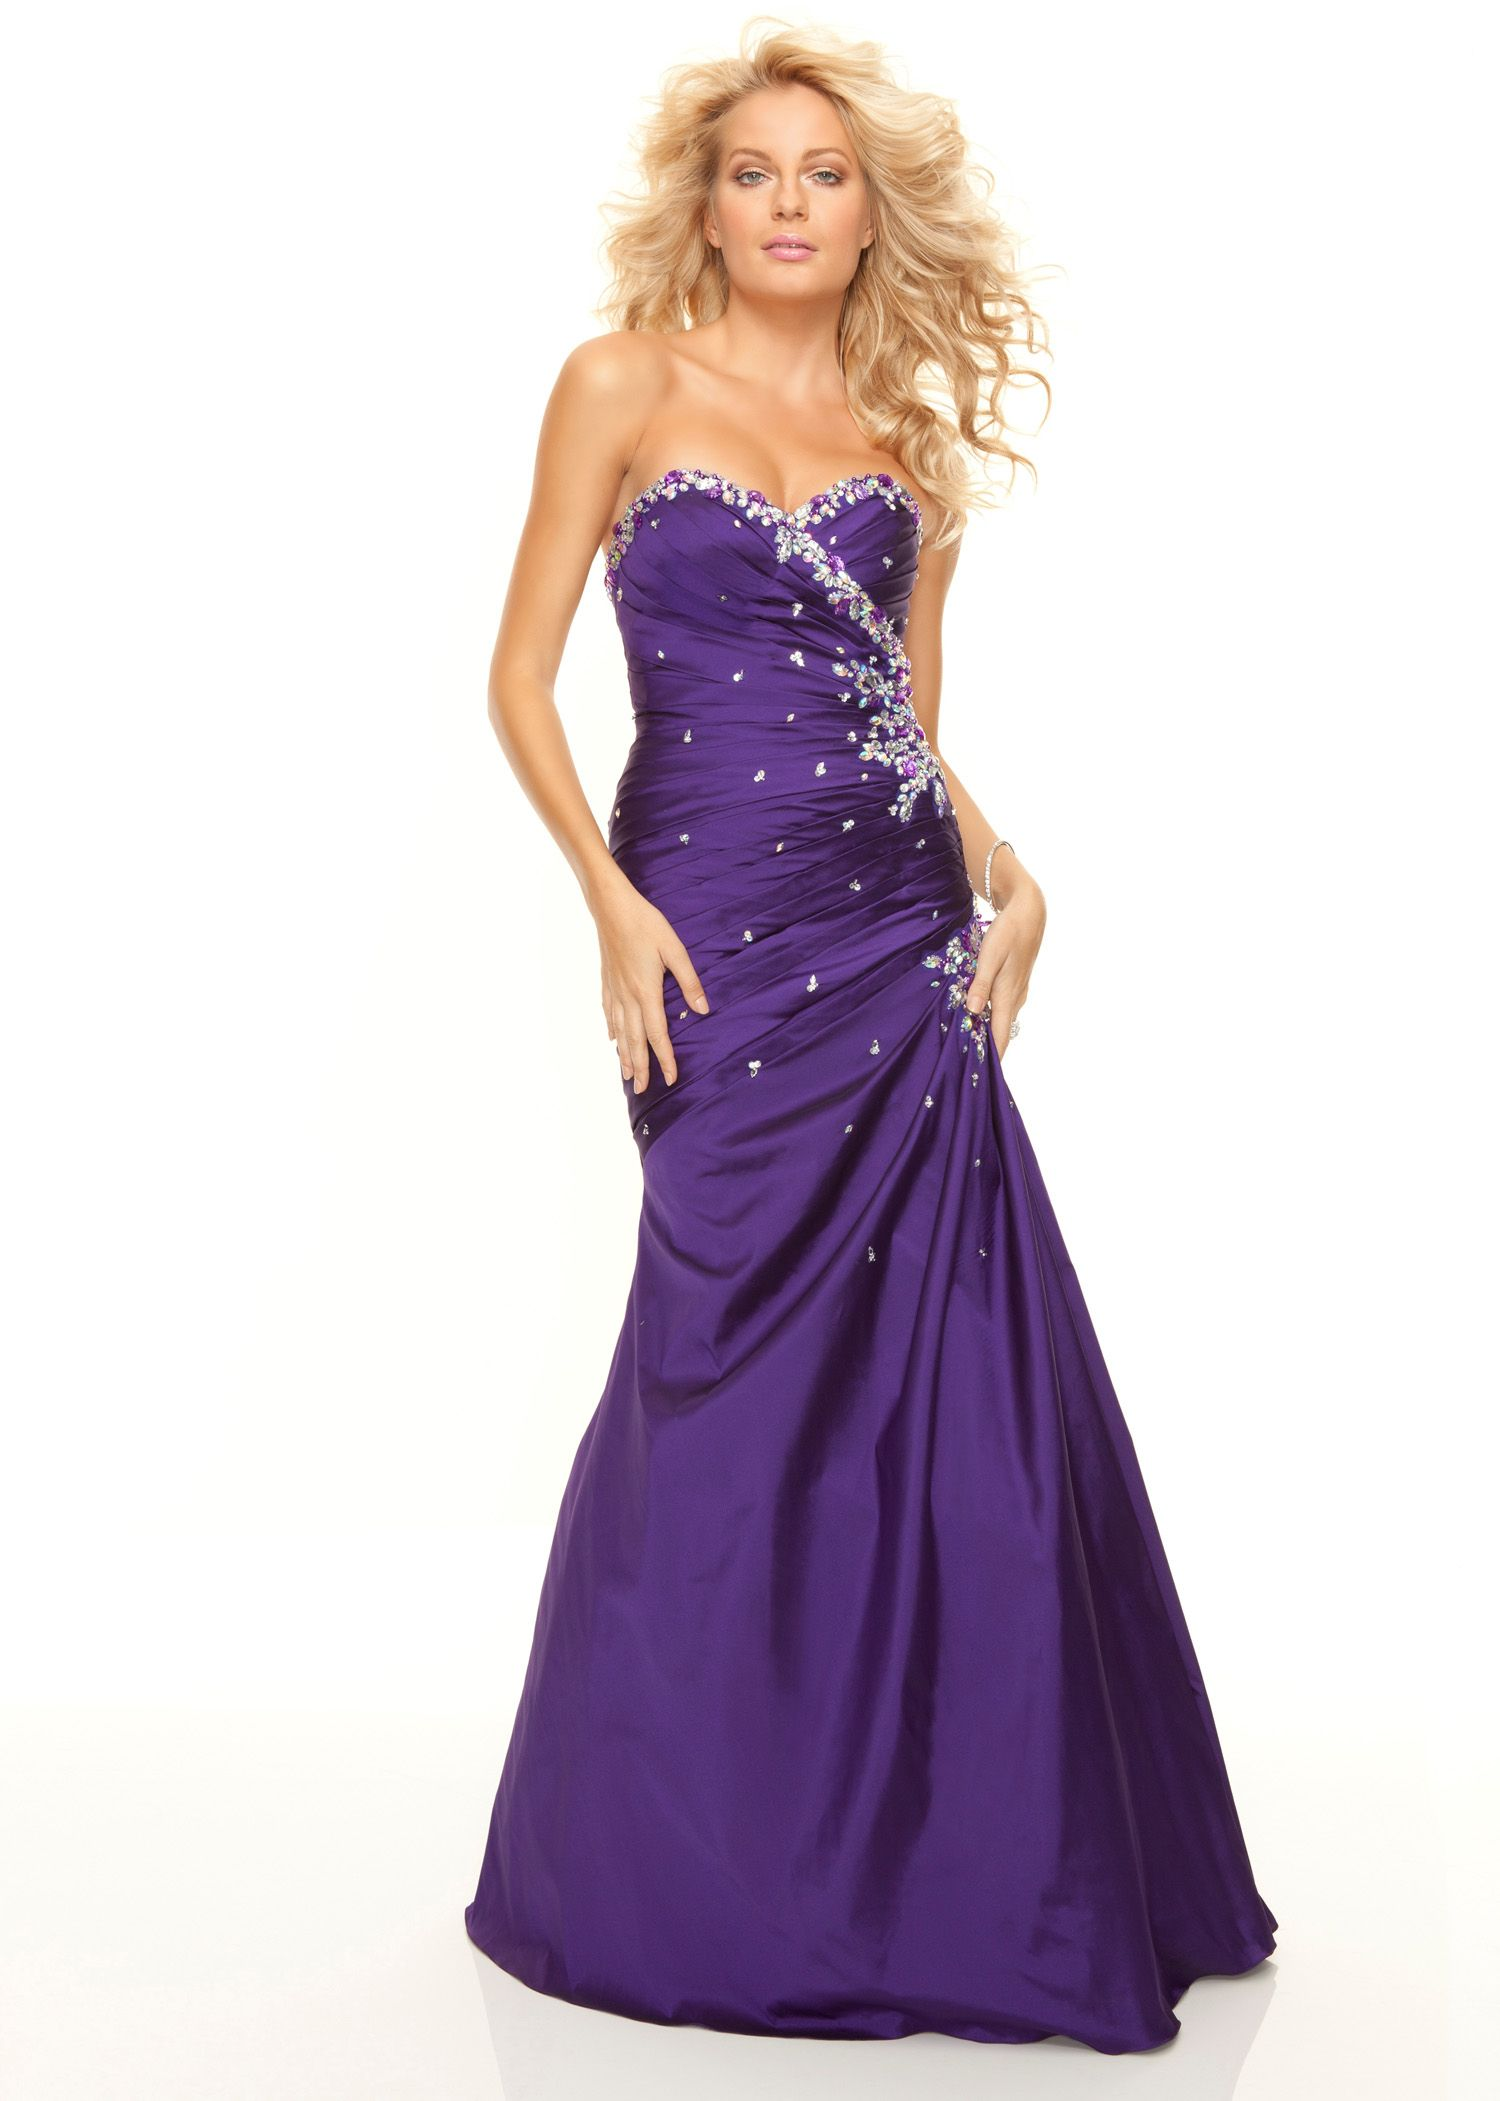 Paparazzi by Mori Lee 93081 strapless purple prom dress ...